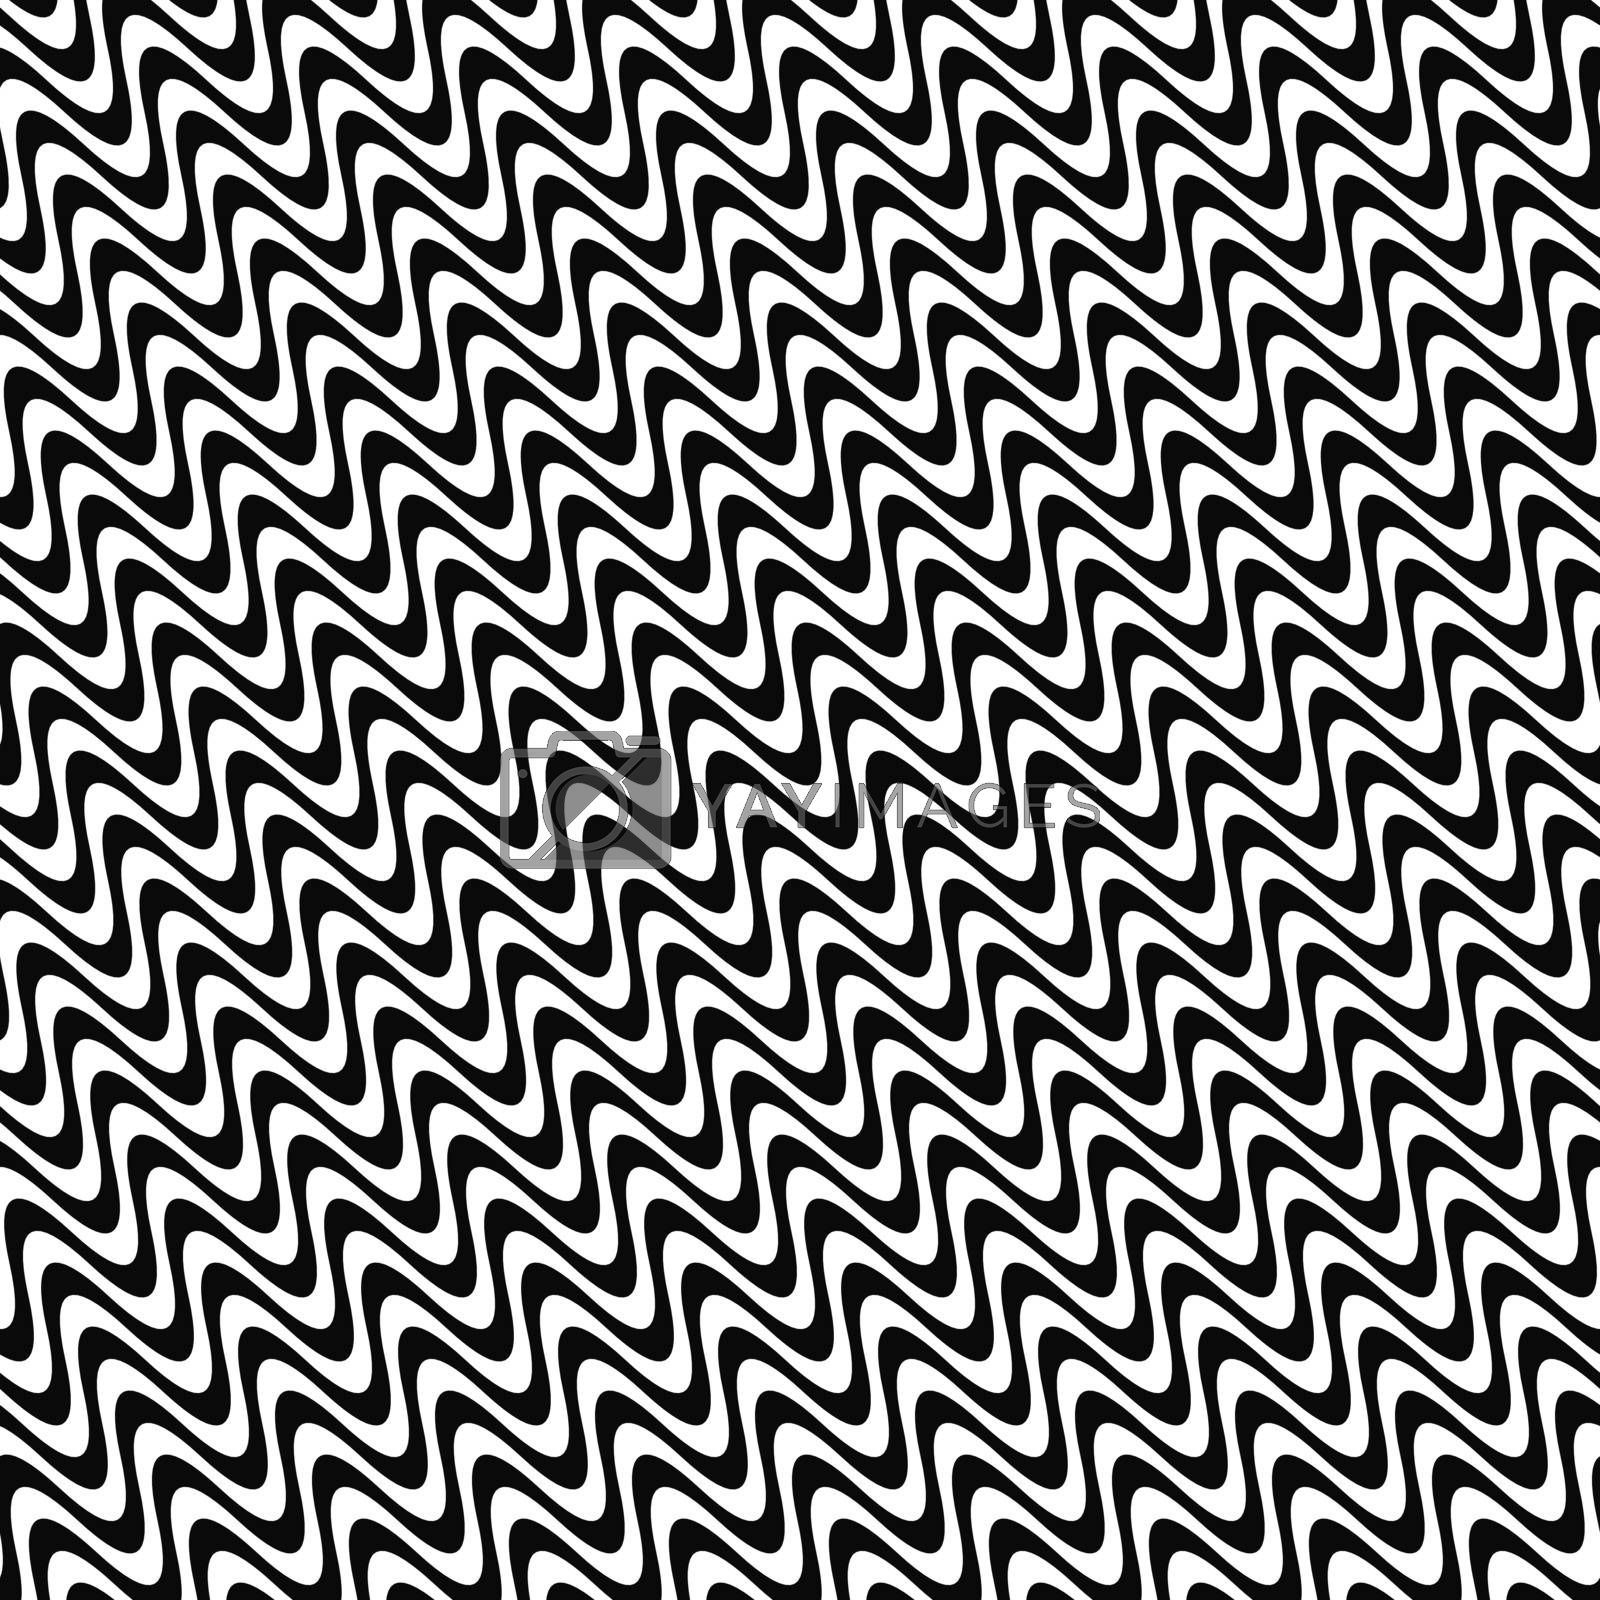 Repeating angular black and white wave pattern